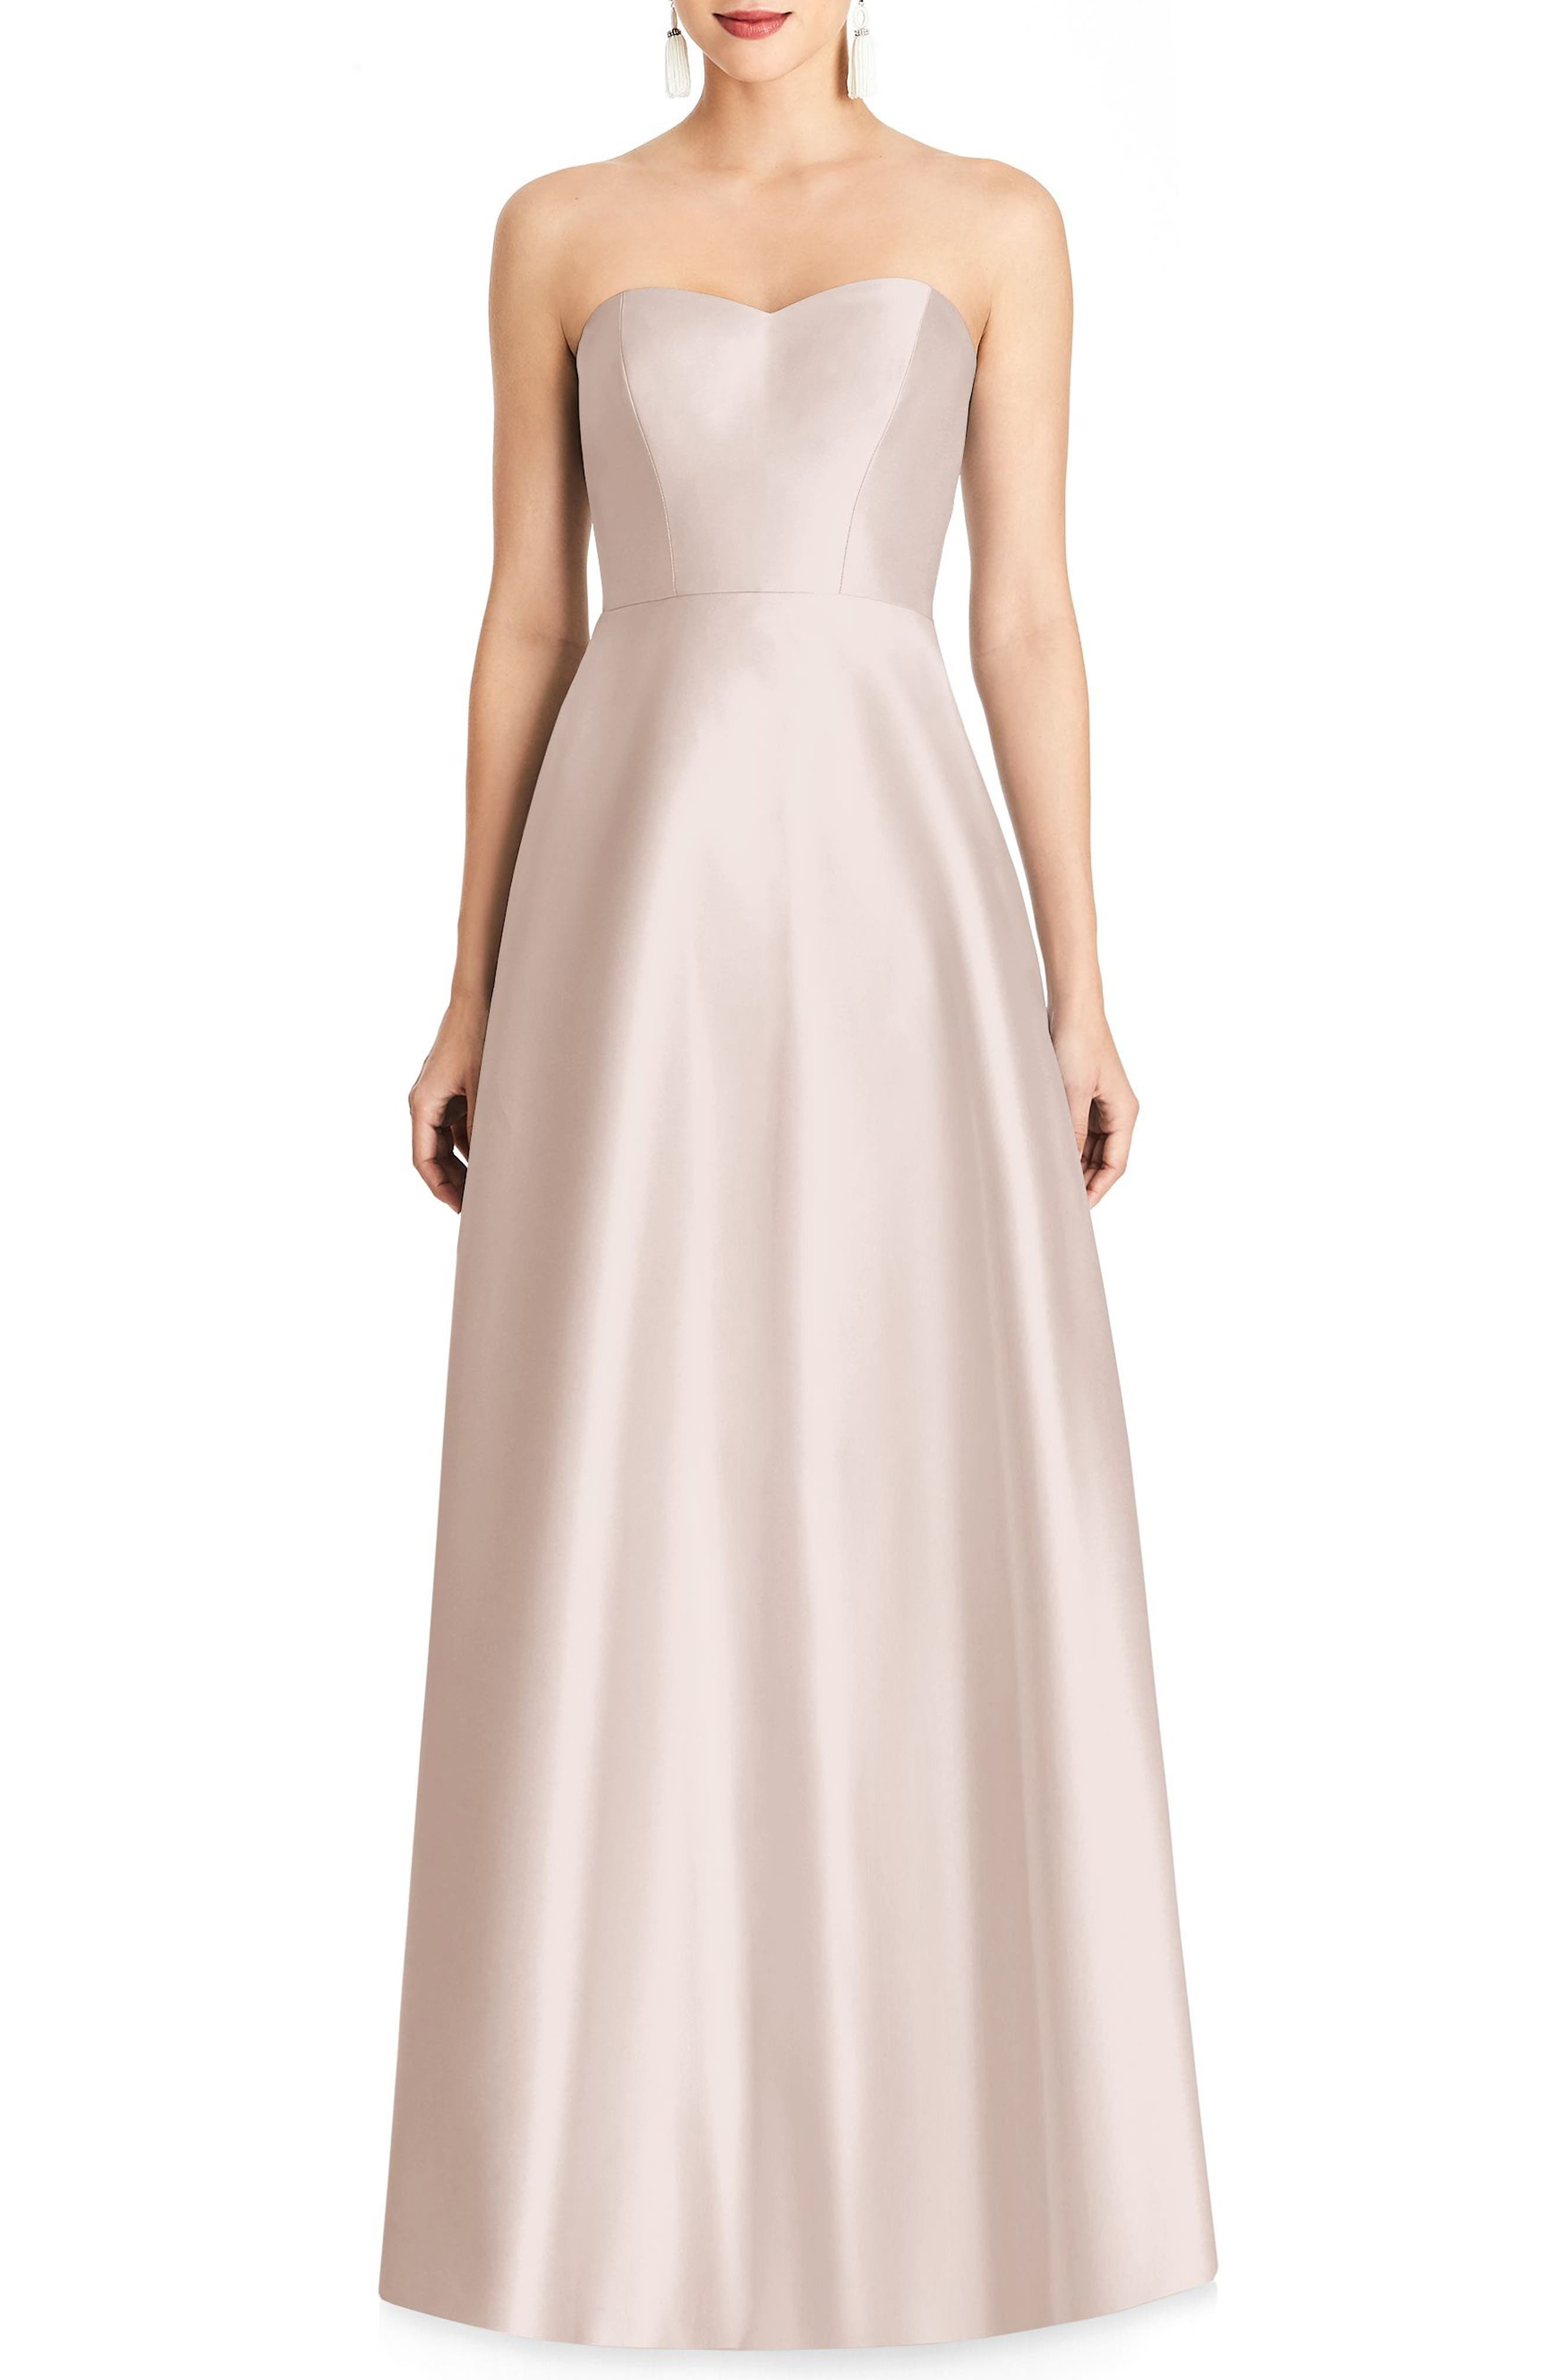 Alfred sung bridesmaid wedding party dresses nordstrom alfred sung strapless sateen gown ombrellifo Gallery